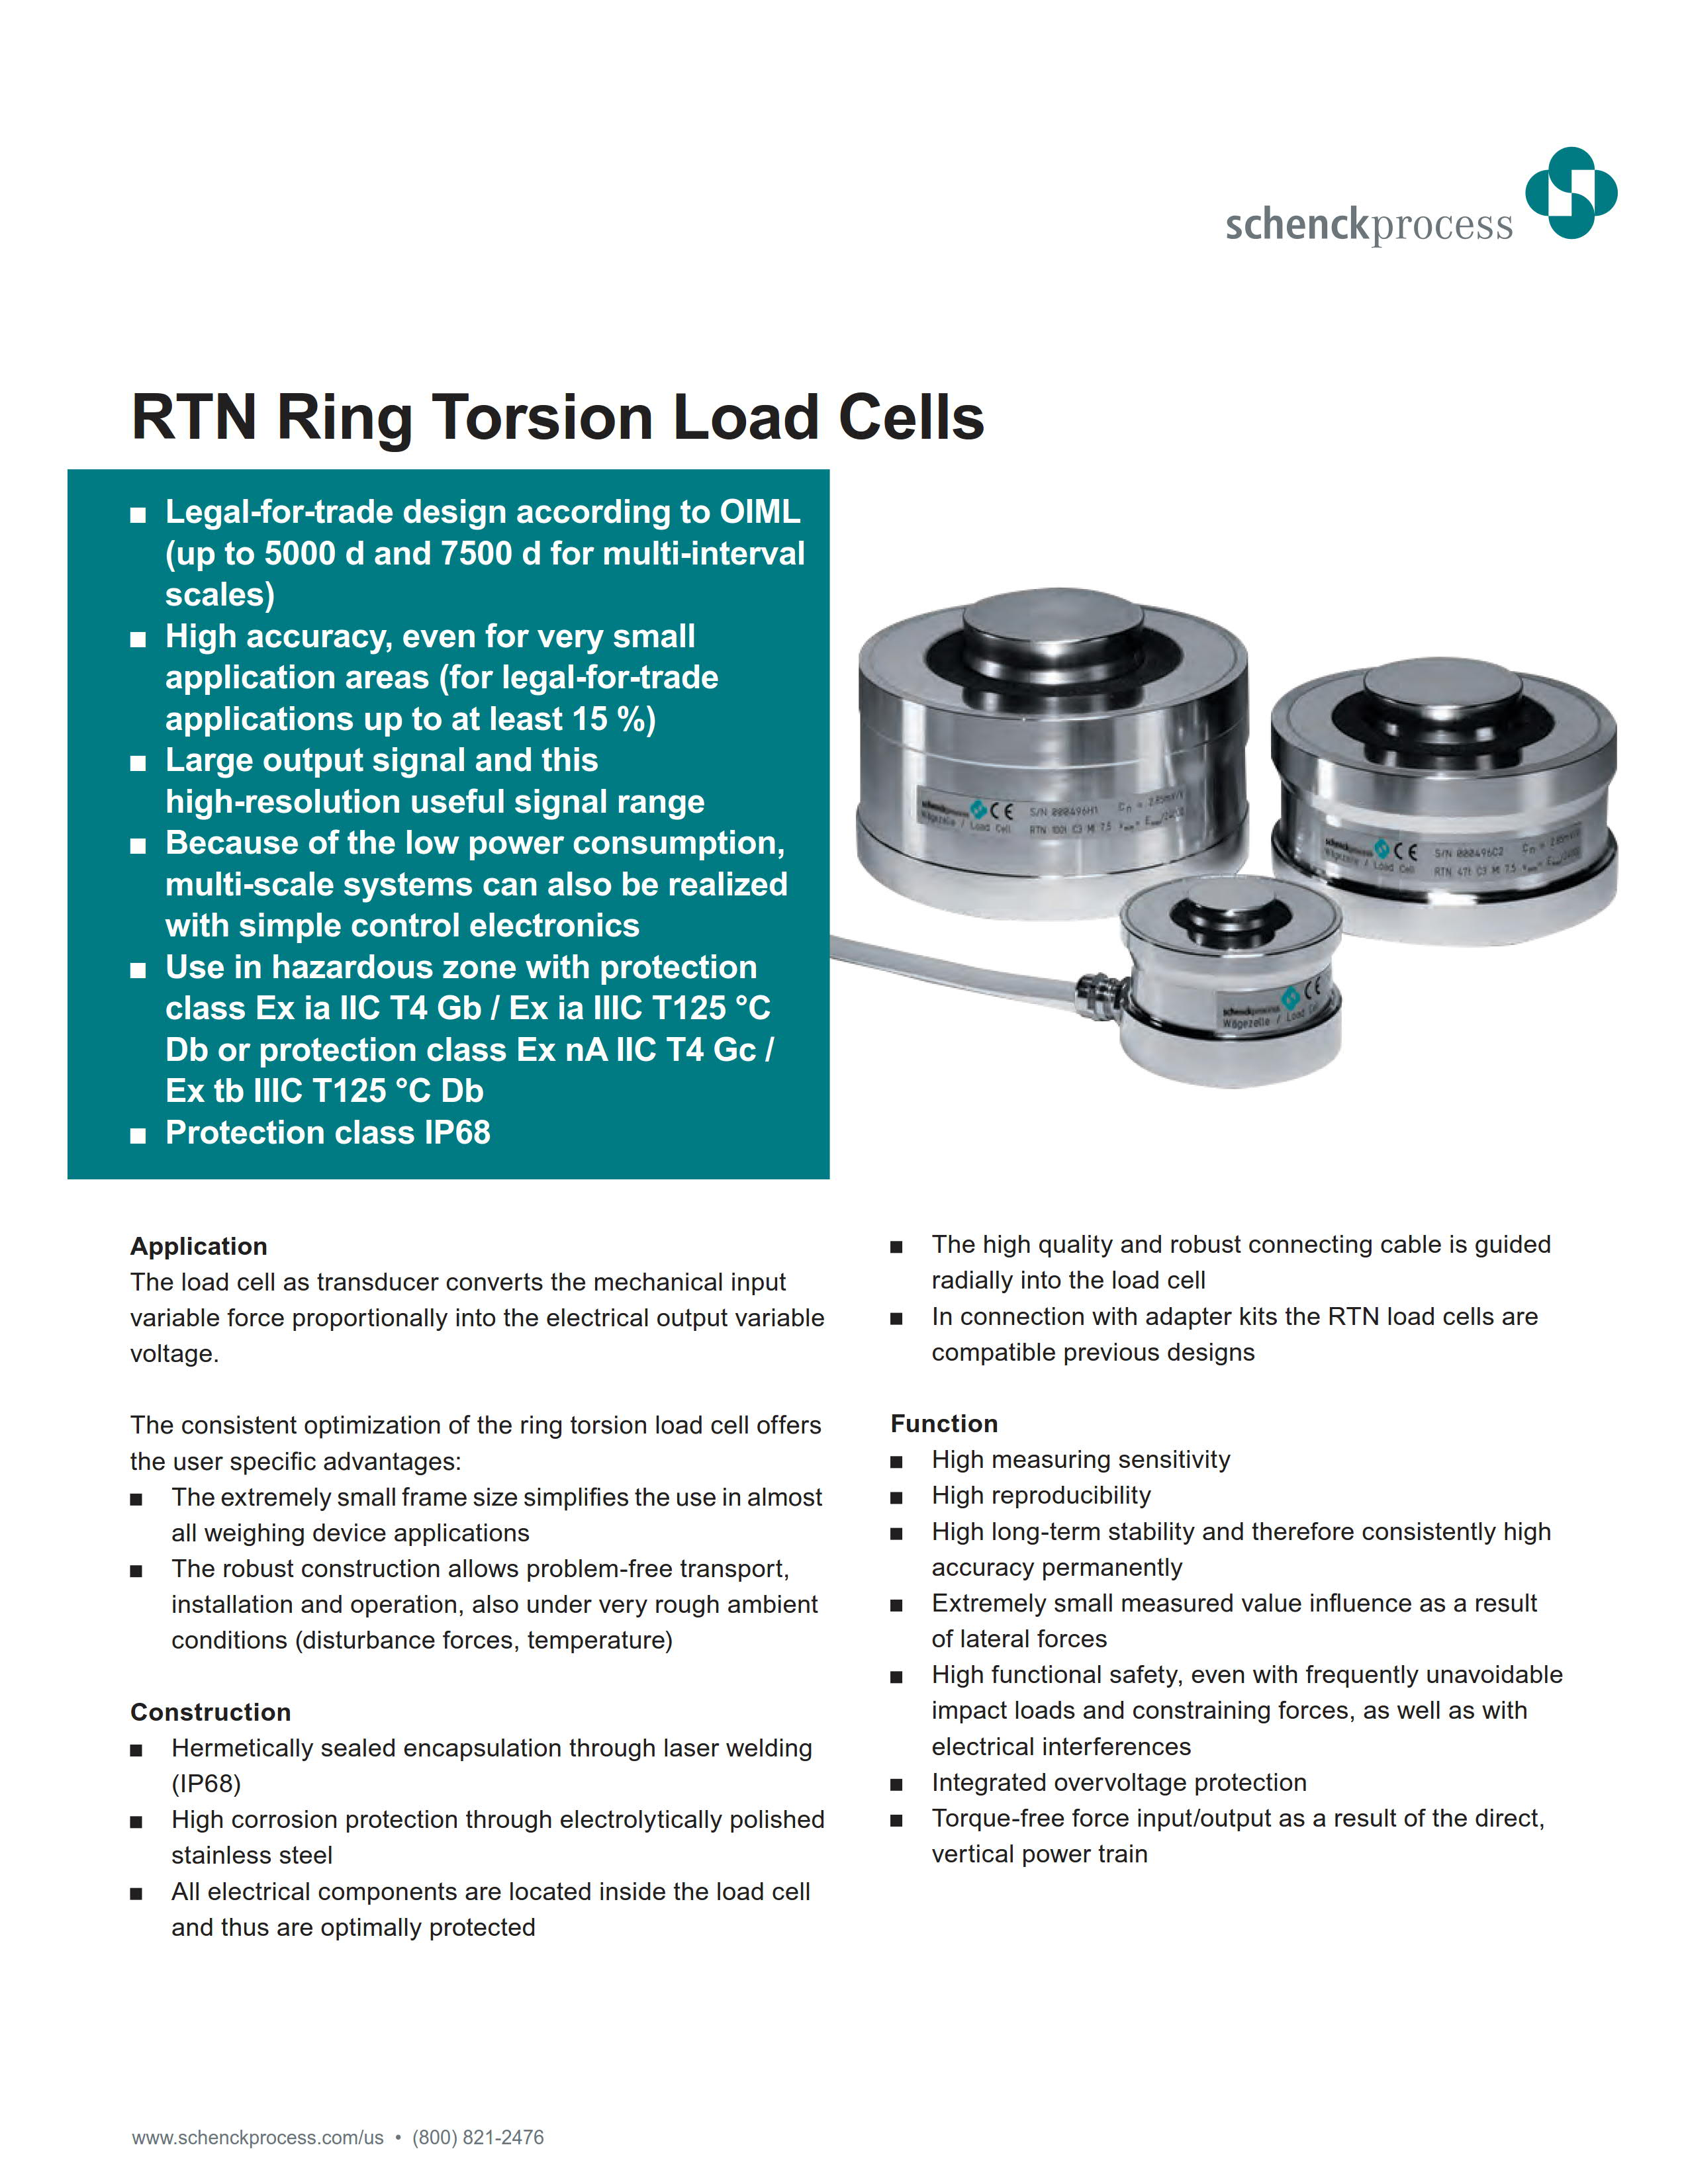 RTN Ring Torsion Load Cells